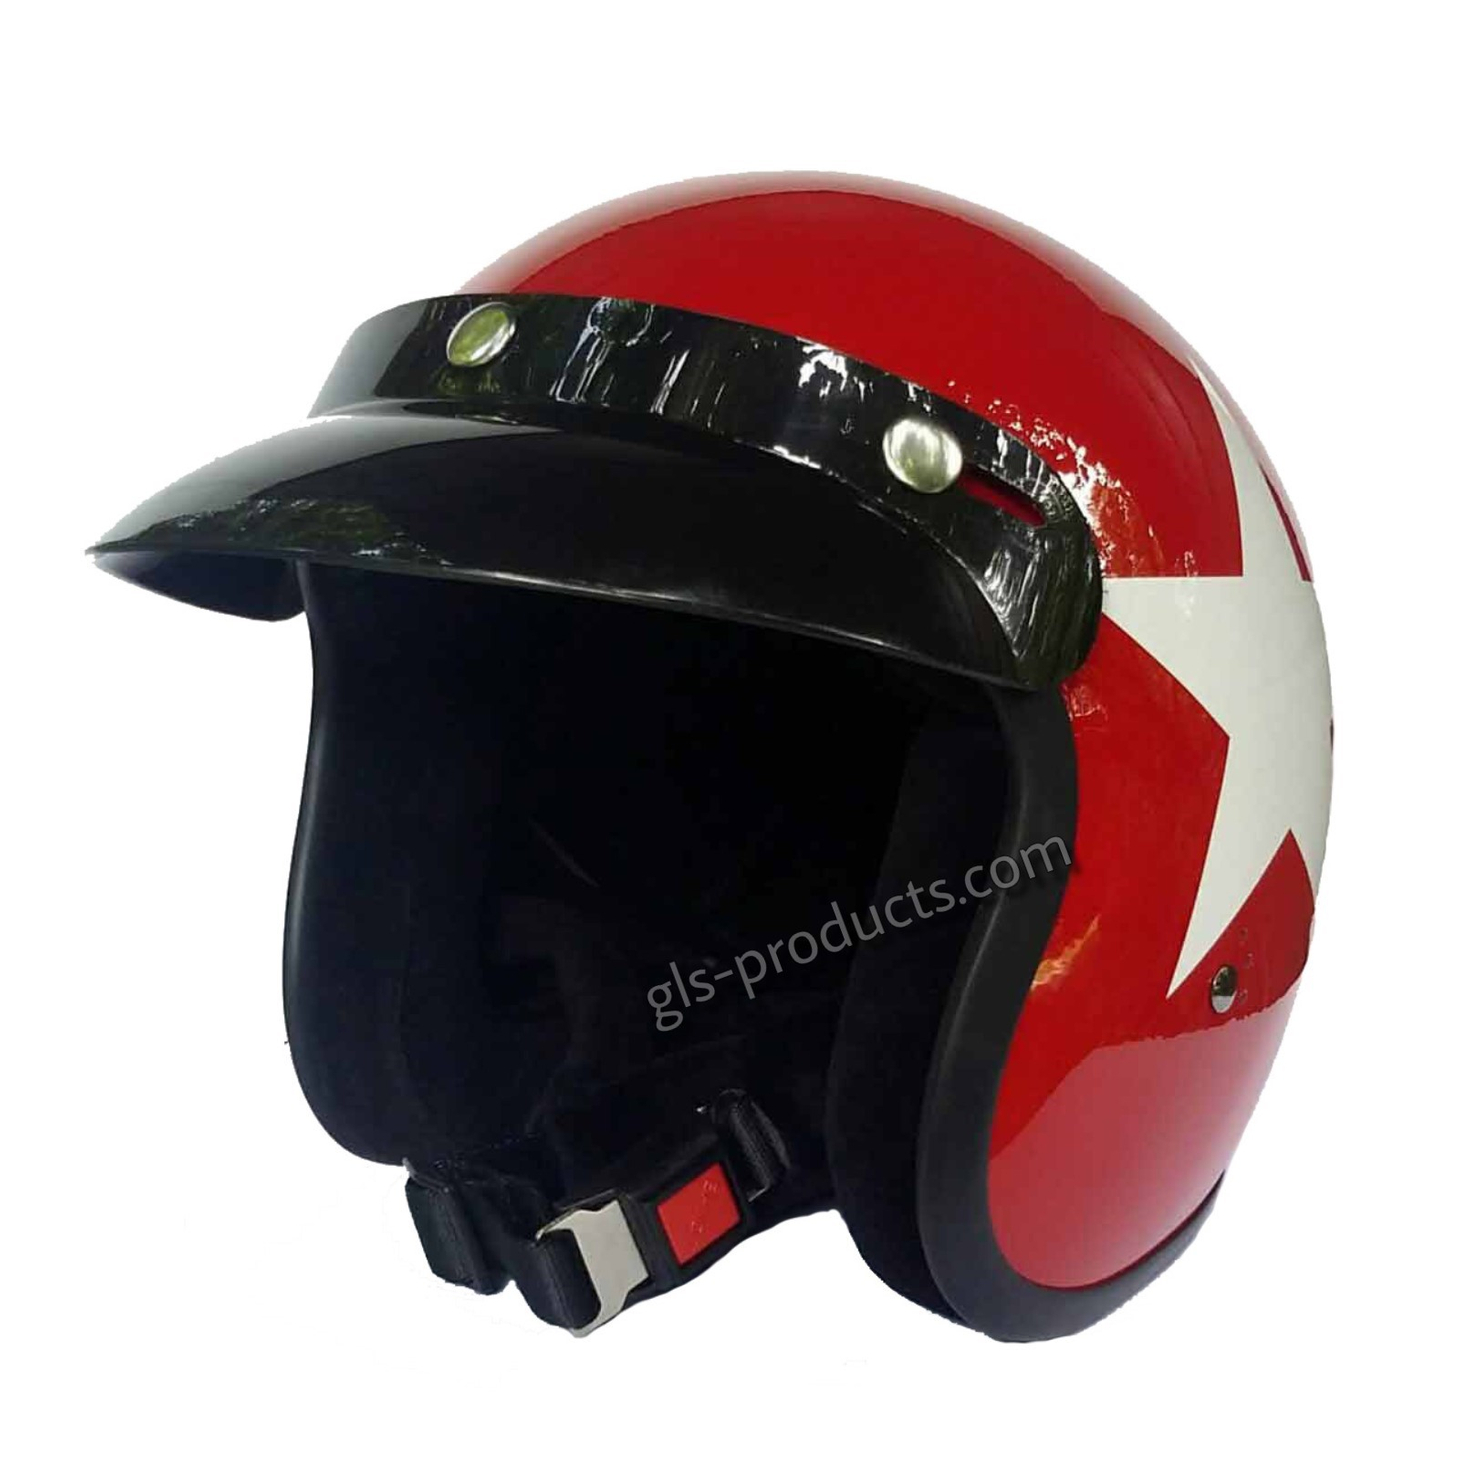 Bandit Star Red Jet Helmet - Red Motorcycle Helmet – Picture 3